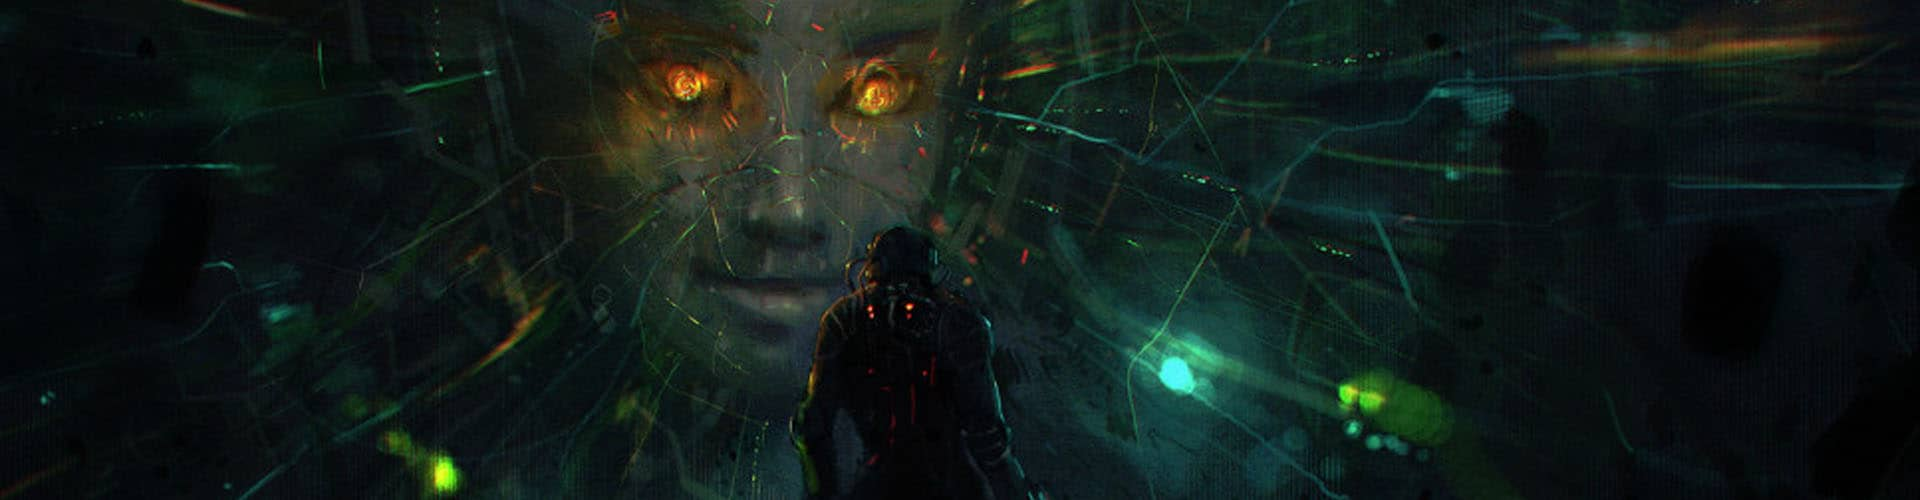 Best Upcoming Game Remakes 2019 (And Beyond)